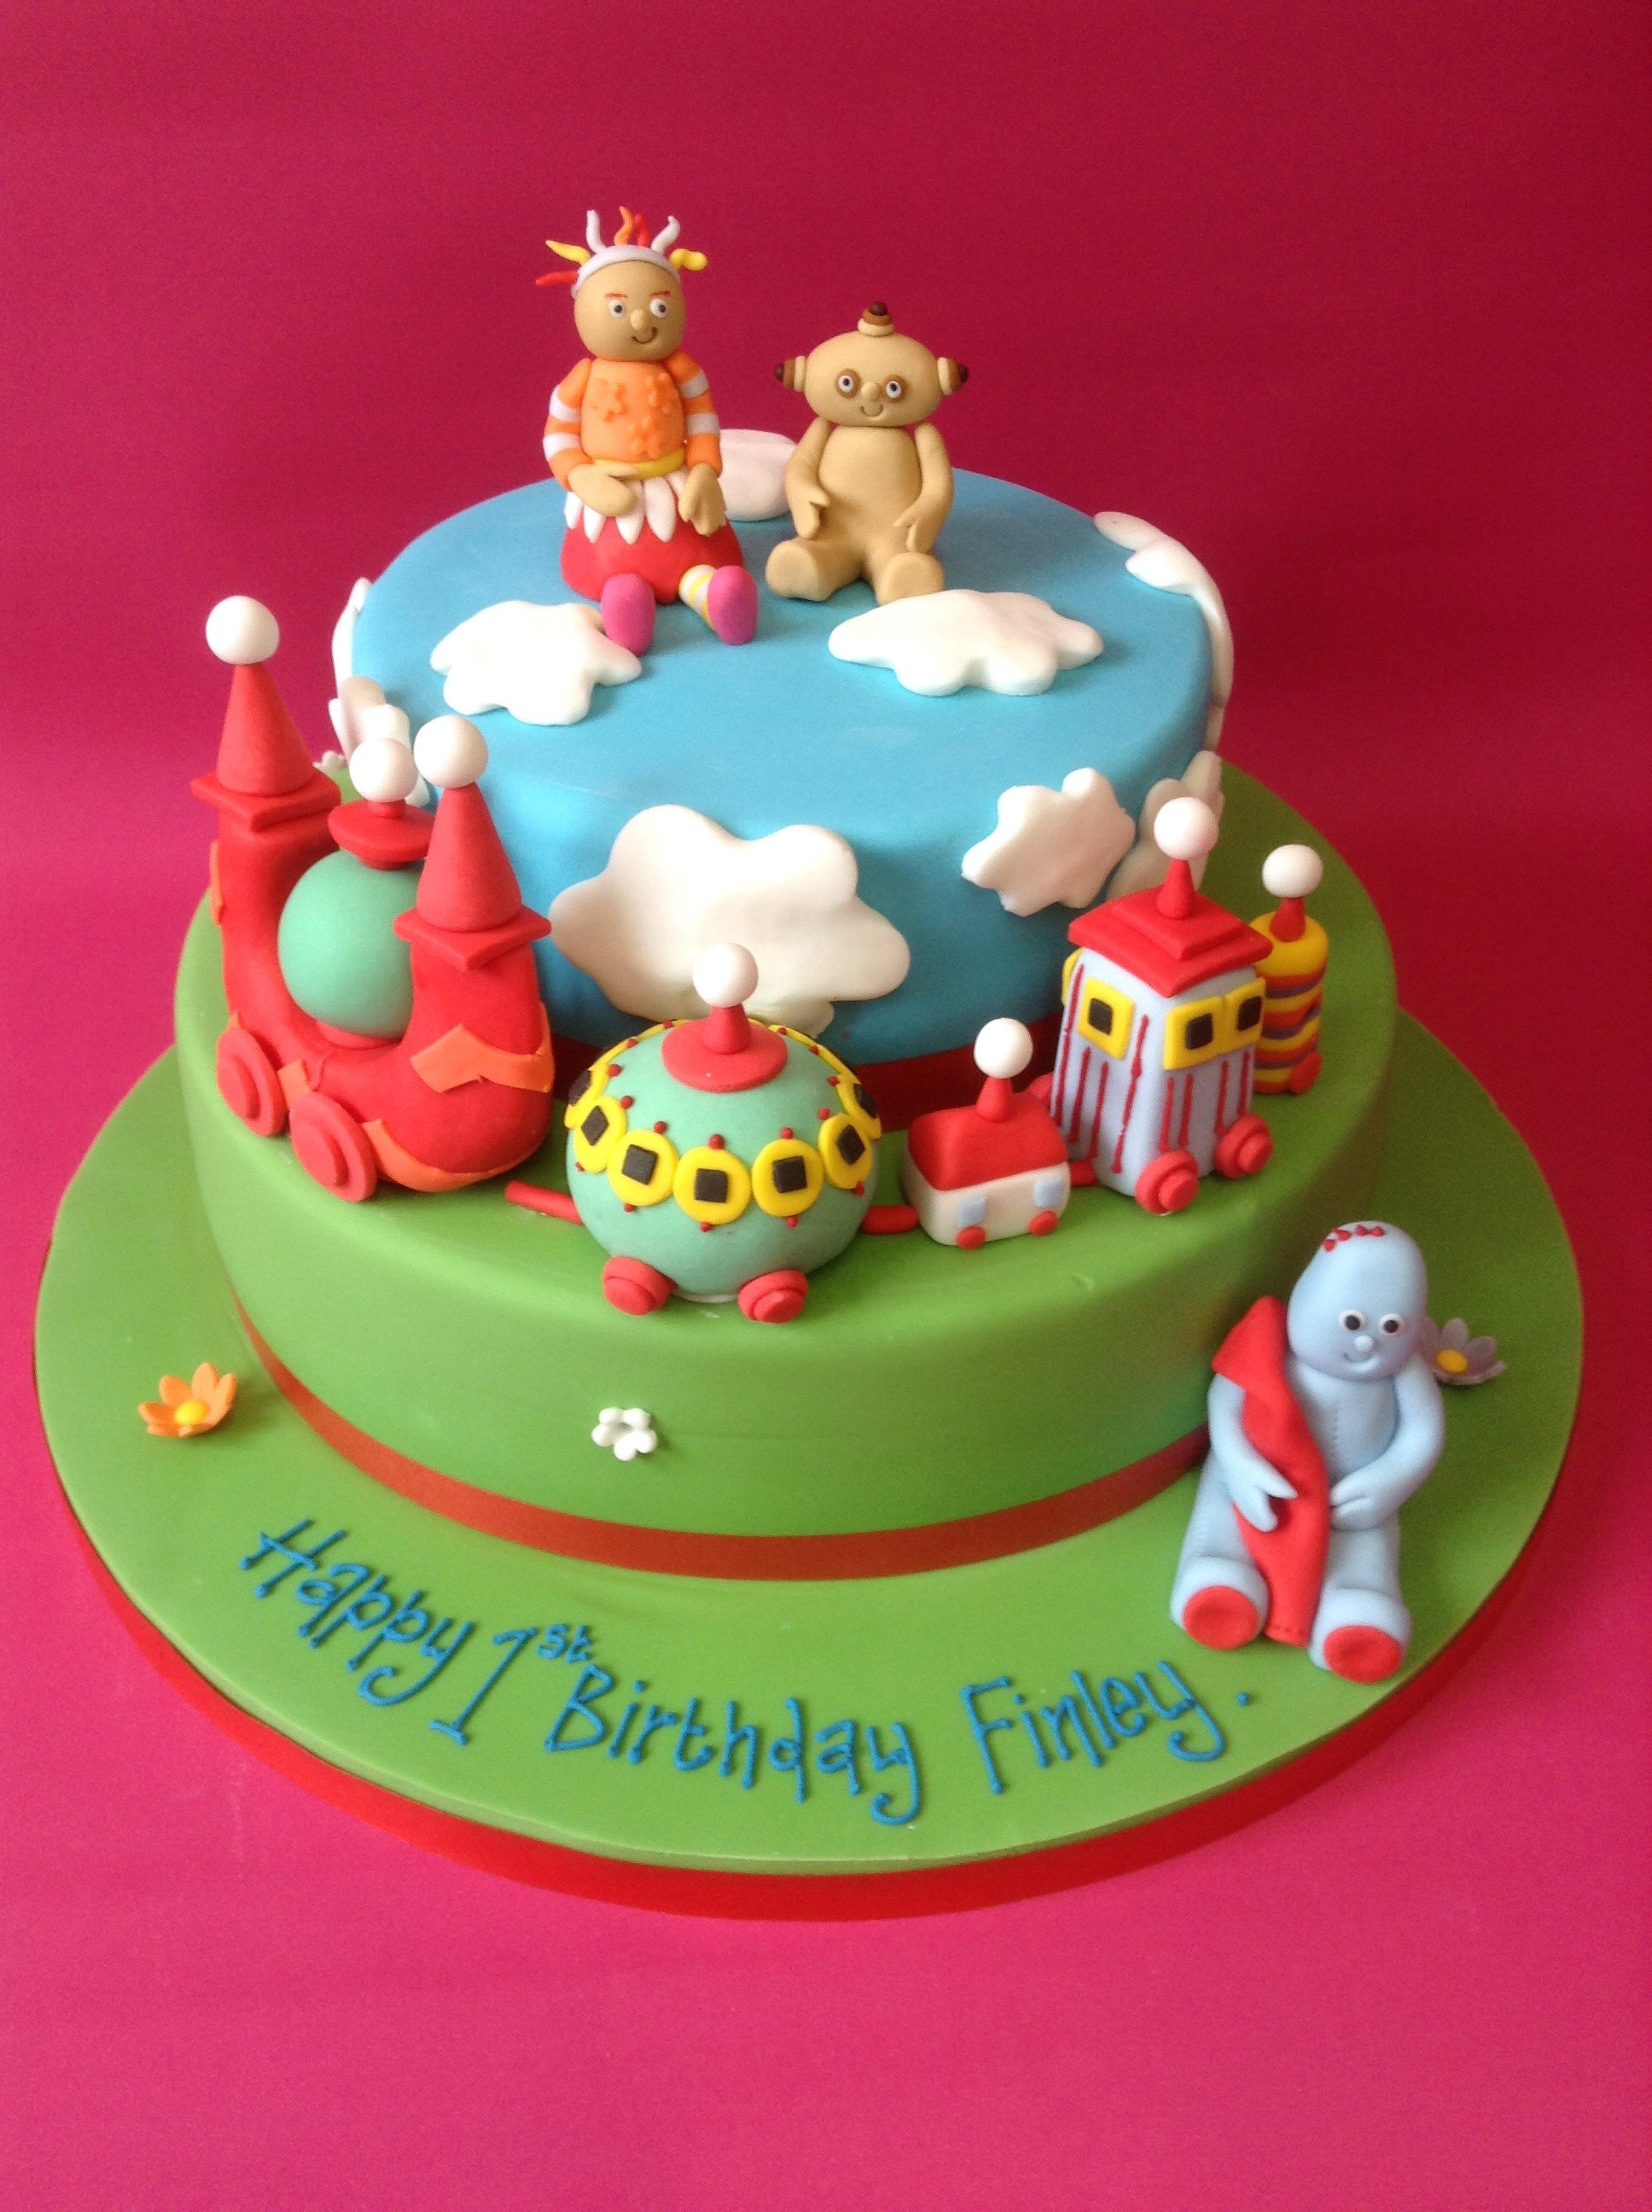 Birthday Cakes For Kids Kids Birthday Cakes